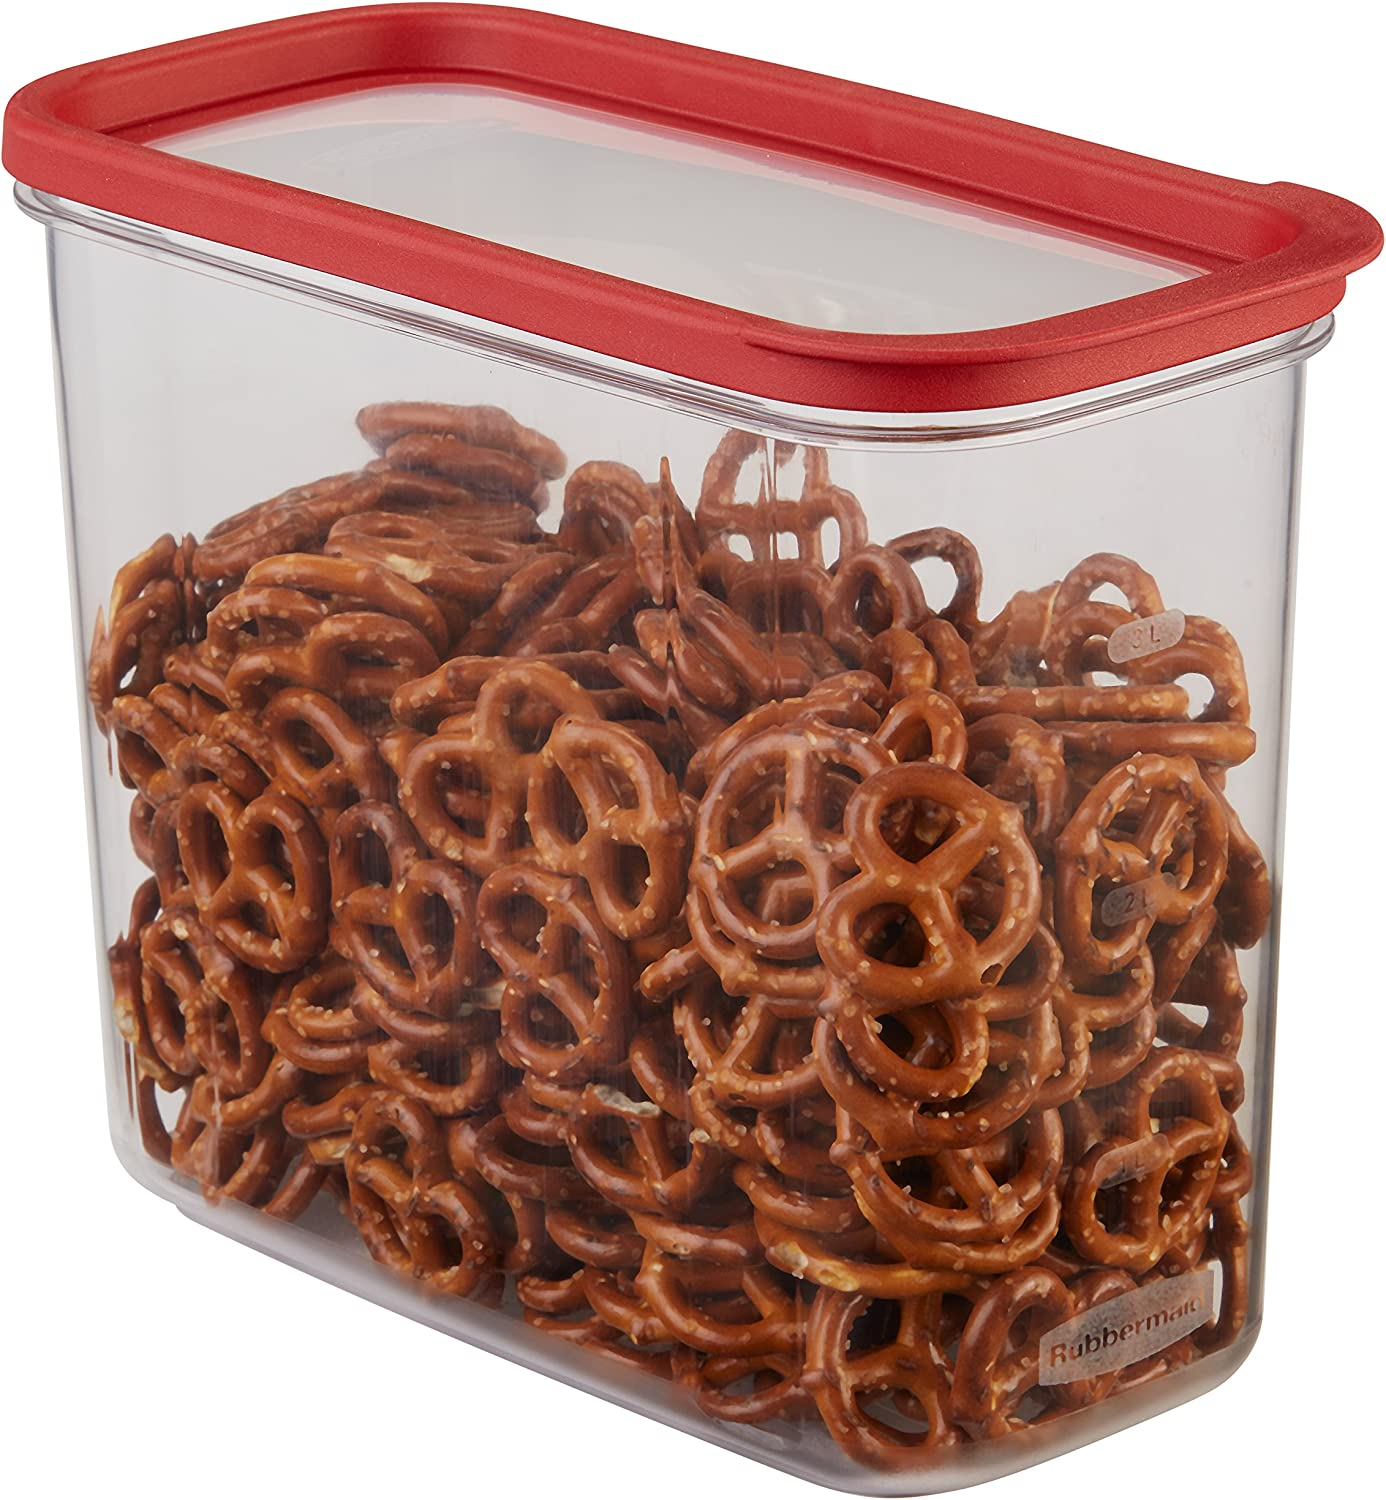 Rubbermaid 1840749 16-Cup Modular Dry Food Storage Zylar Container